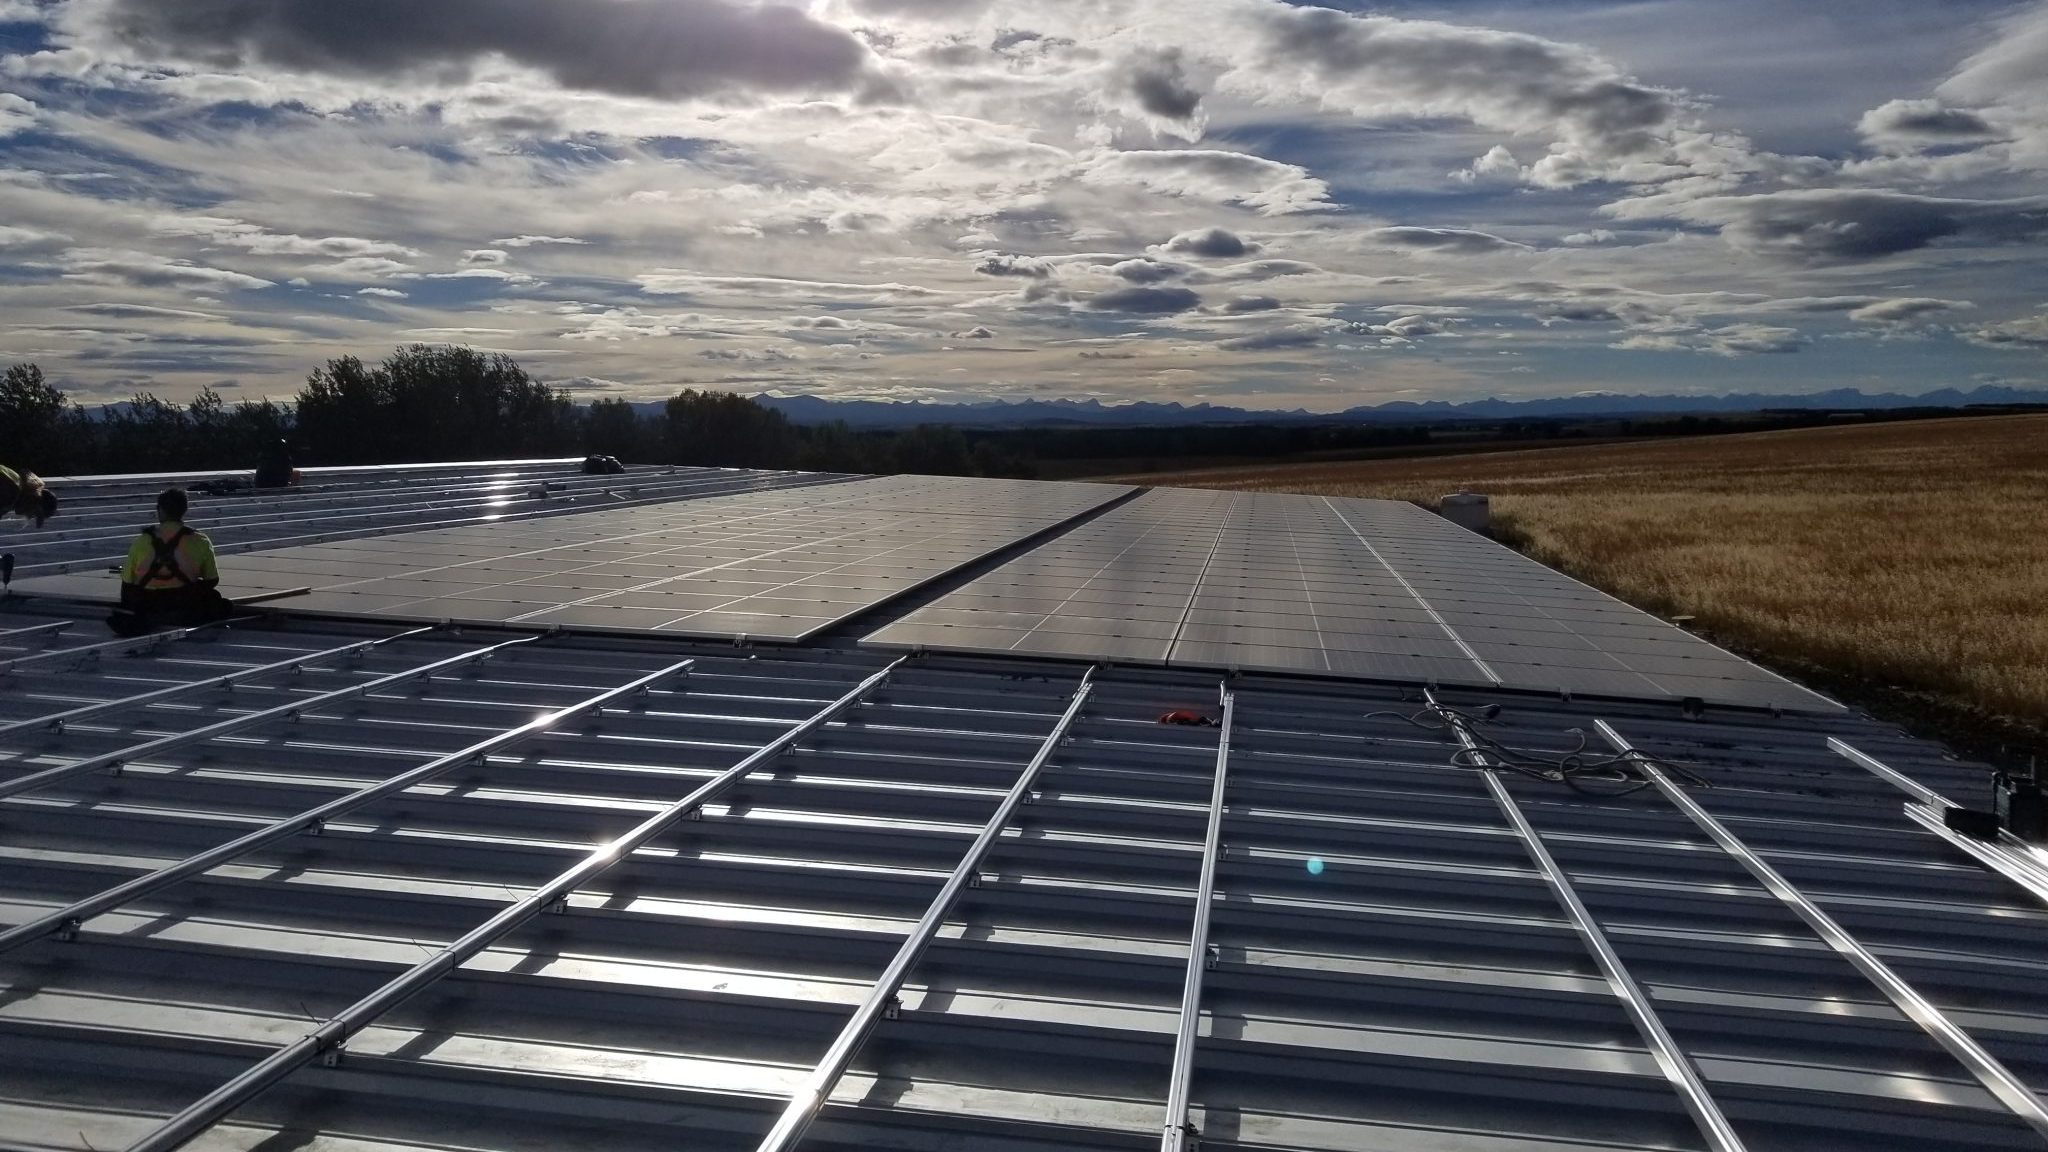 415kW during construction, Springbank